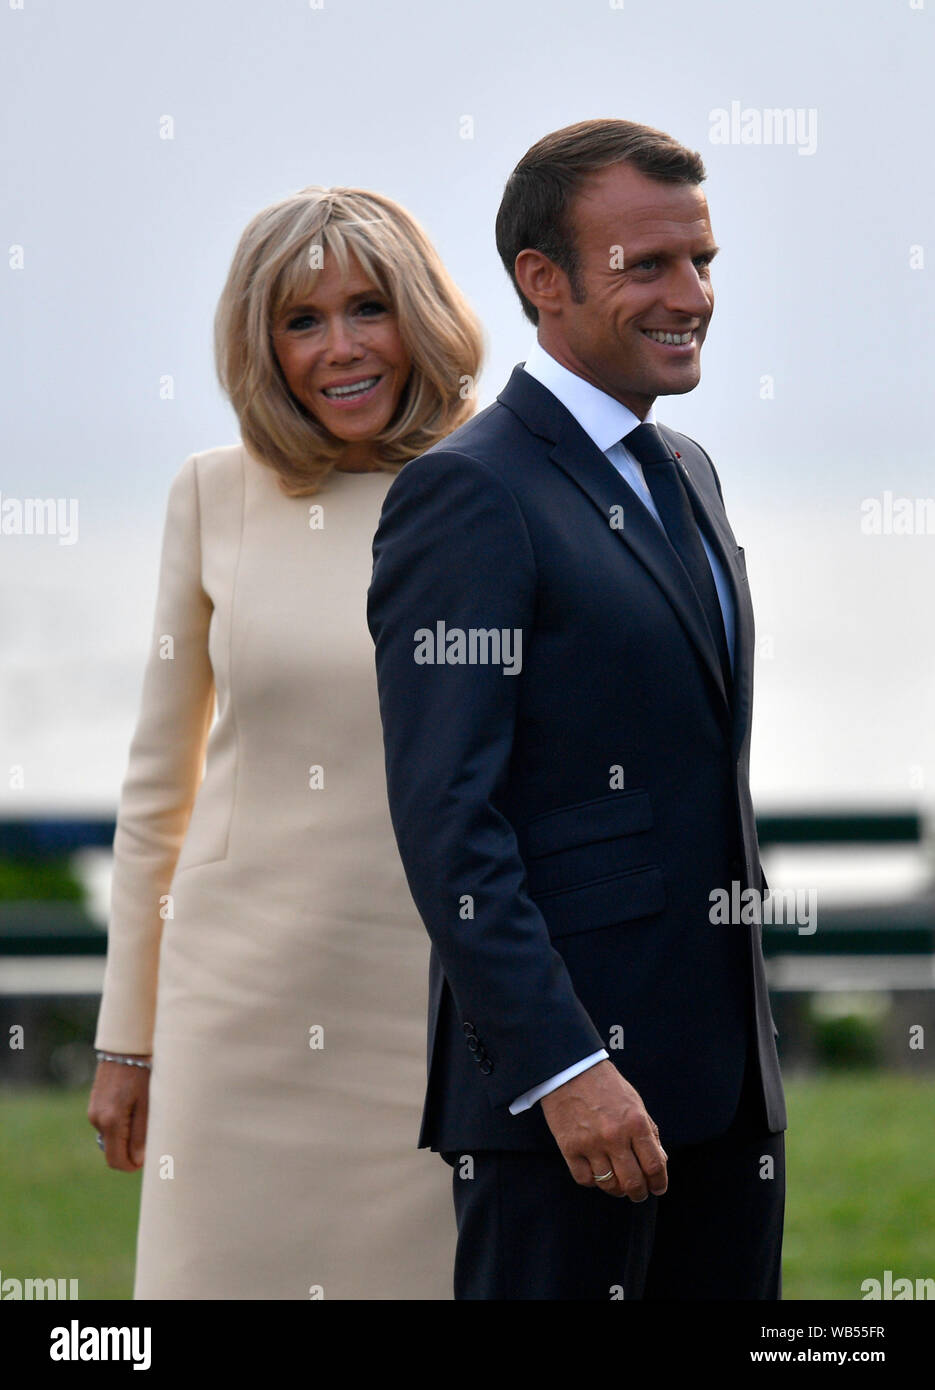 French President Emmanuel Macron And His Wife Brigitte Trogneux At The Official Welcome During The G7 Summit In Biarritz France Stock Photo Alamy